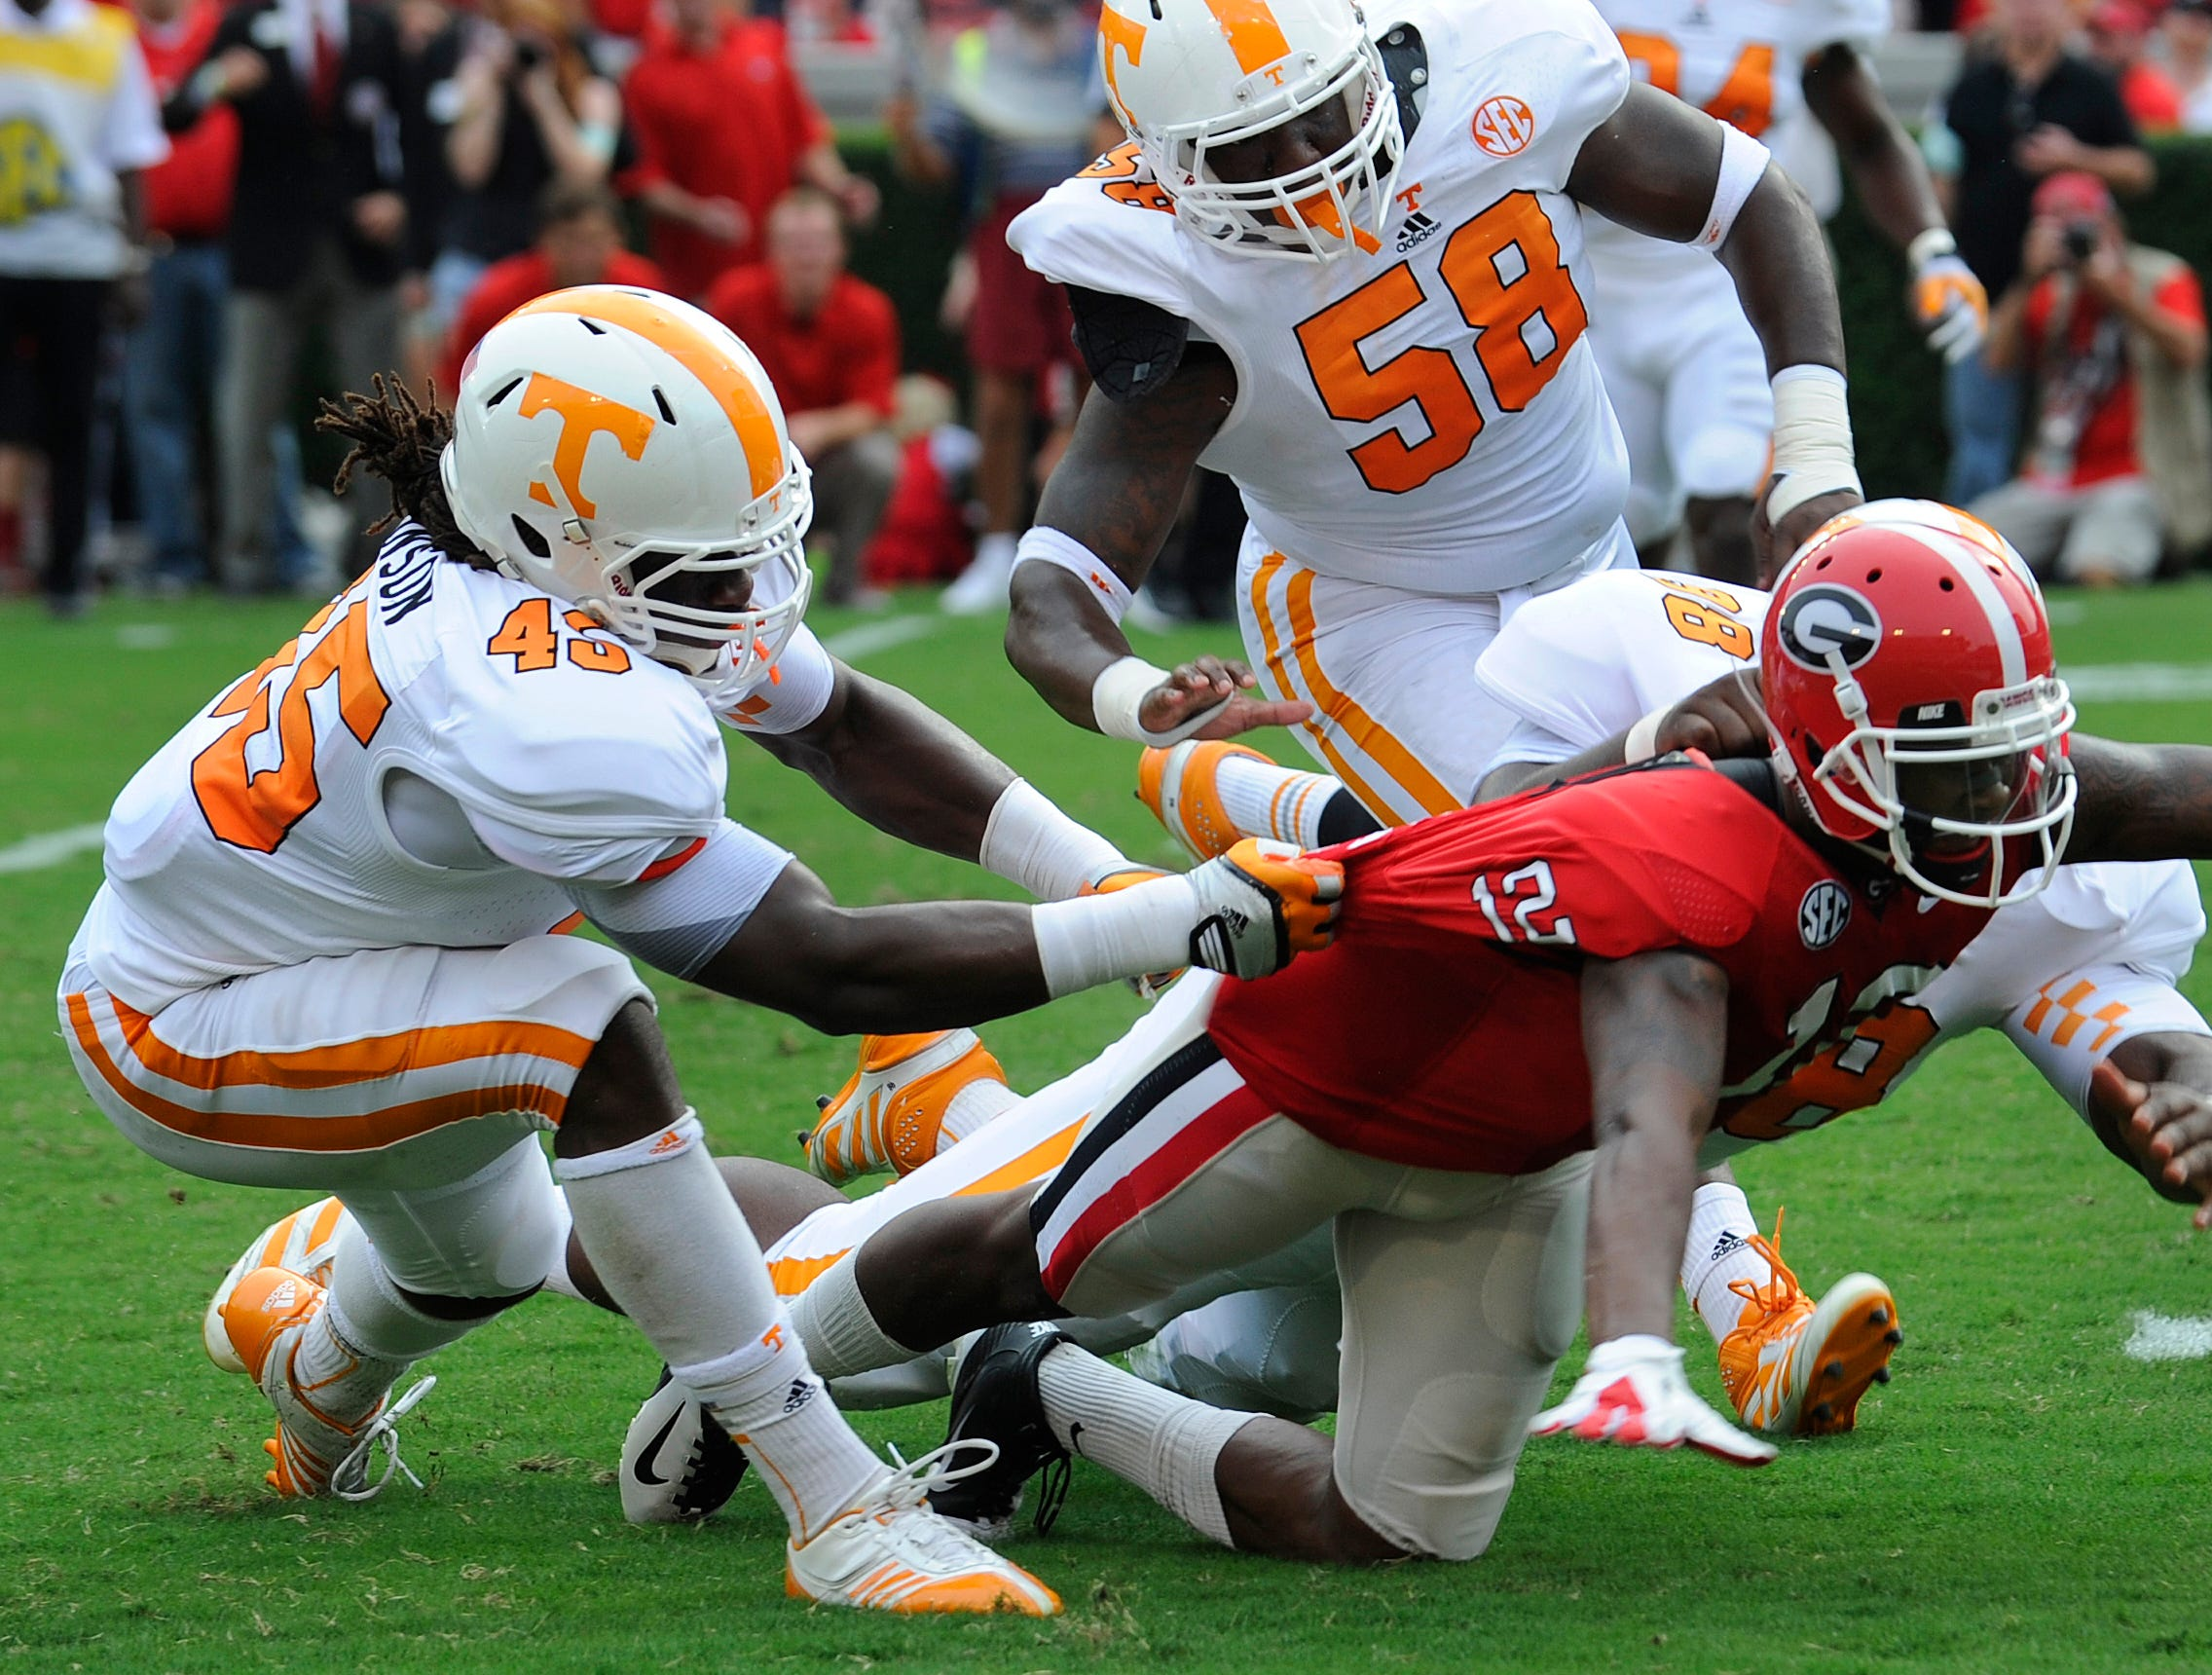 Not sure I've had a still frame that showed clearly that Bulldogs wide receiver Tavarres King's knee was down before the ball crossed the goal line. Tennessee linebacker A.J. Johnson (45) was able to stop him and after an official review the call on the field was revised and the touchdown taken back.